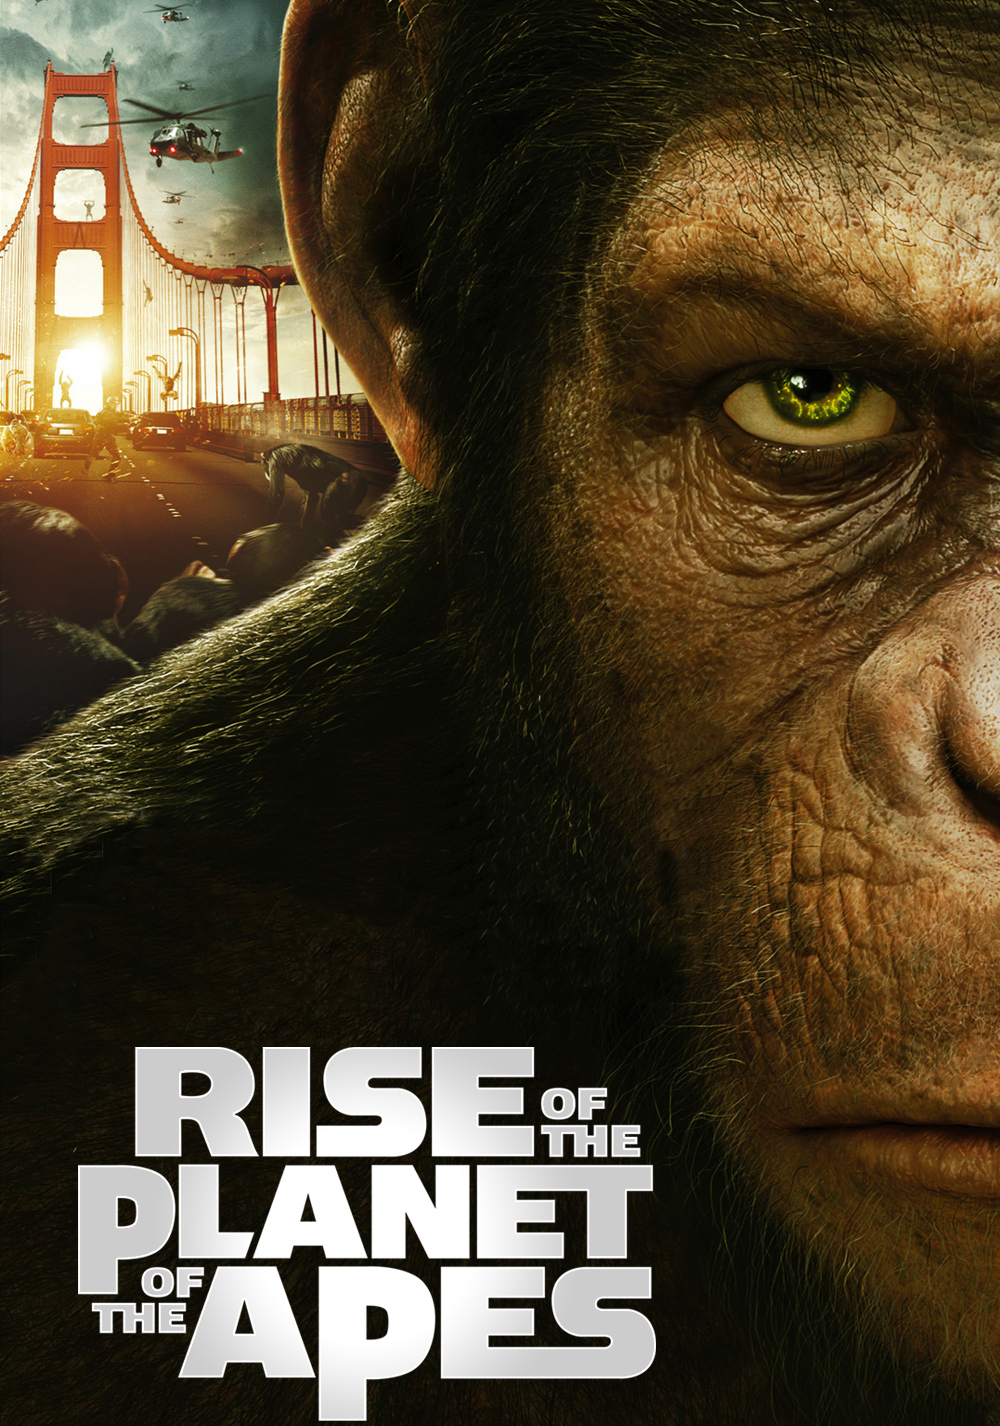 rise-of-the-planet-of-the-apes-52f99f227c310.jpg